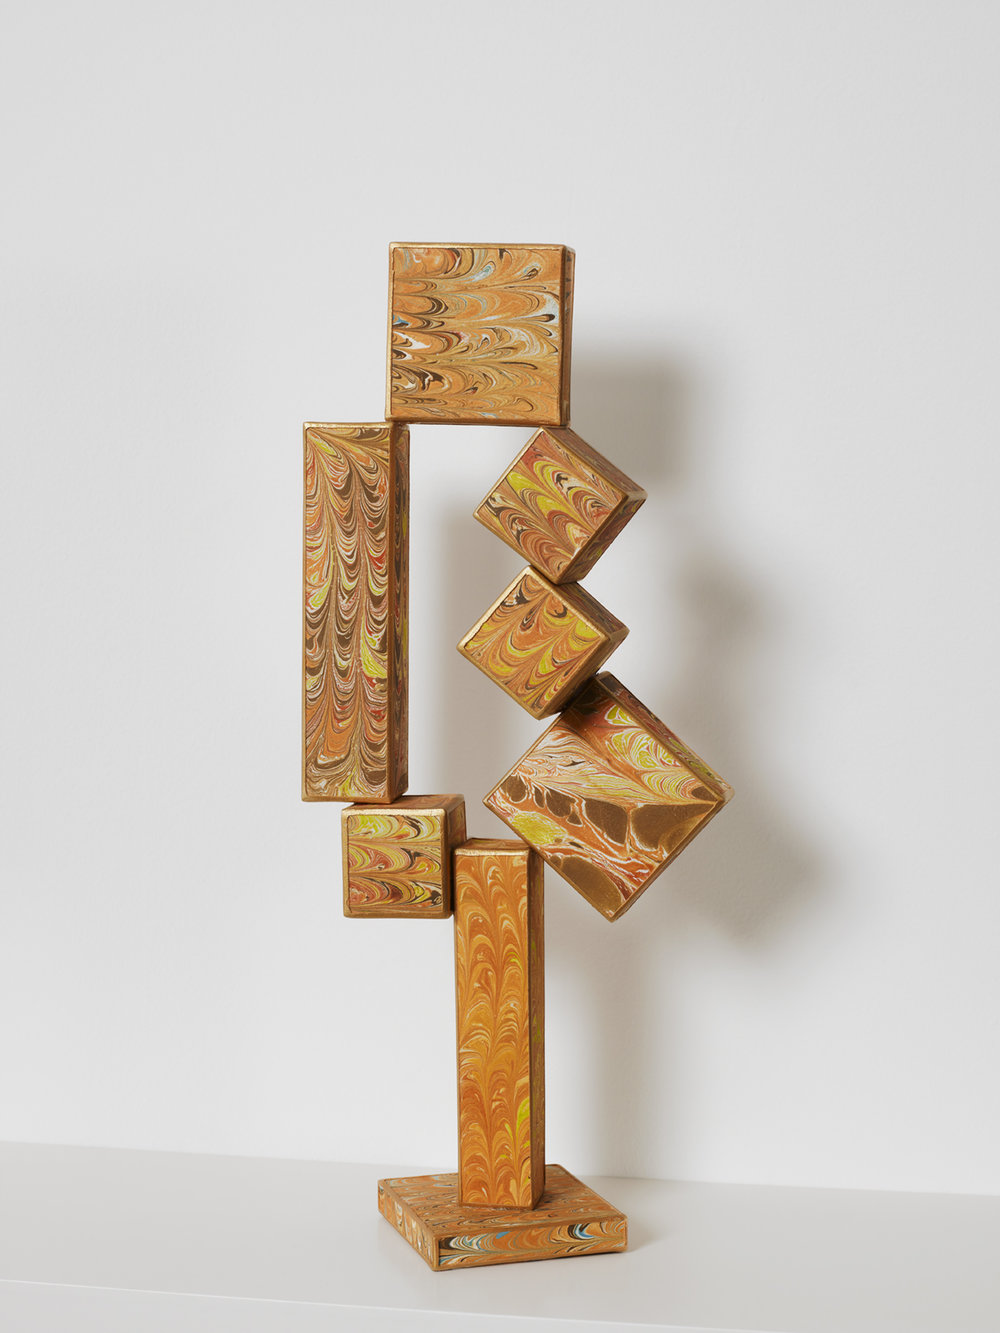 No side to fall in (Cubi XII), 2012, paper, acrylic, wooden armature, 18 1/2 x 7 x 3 inches